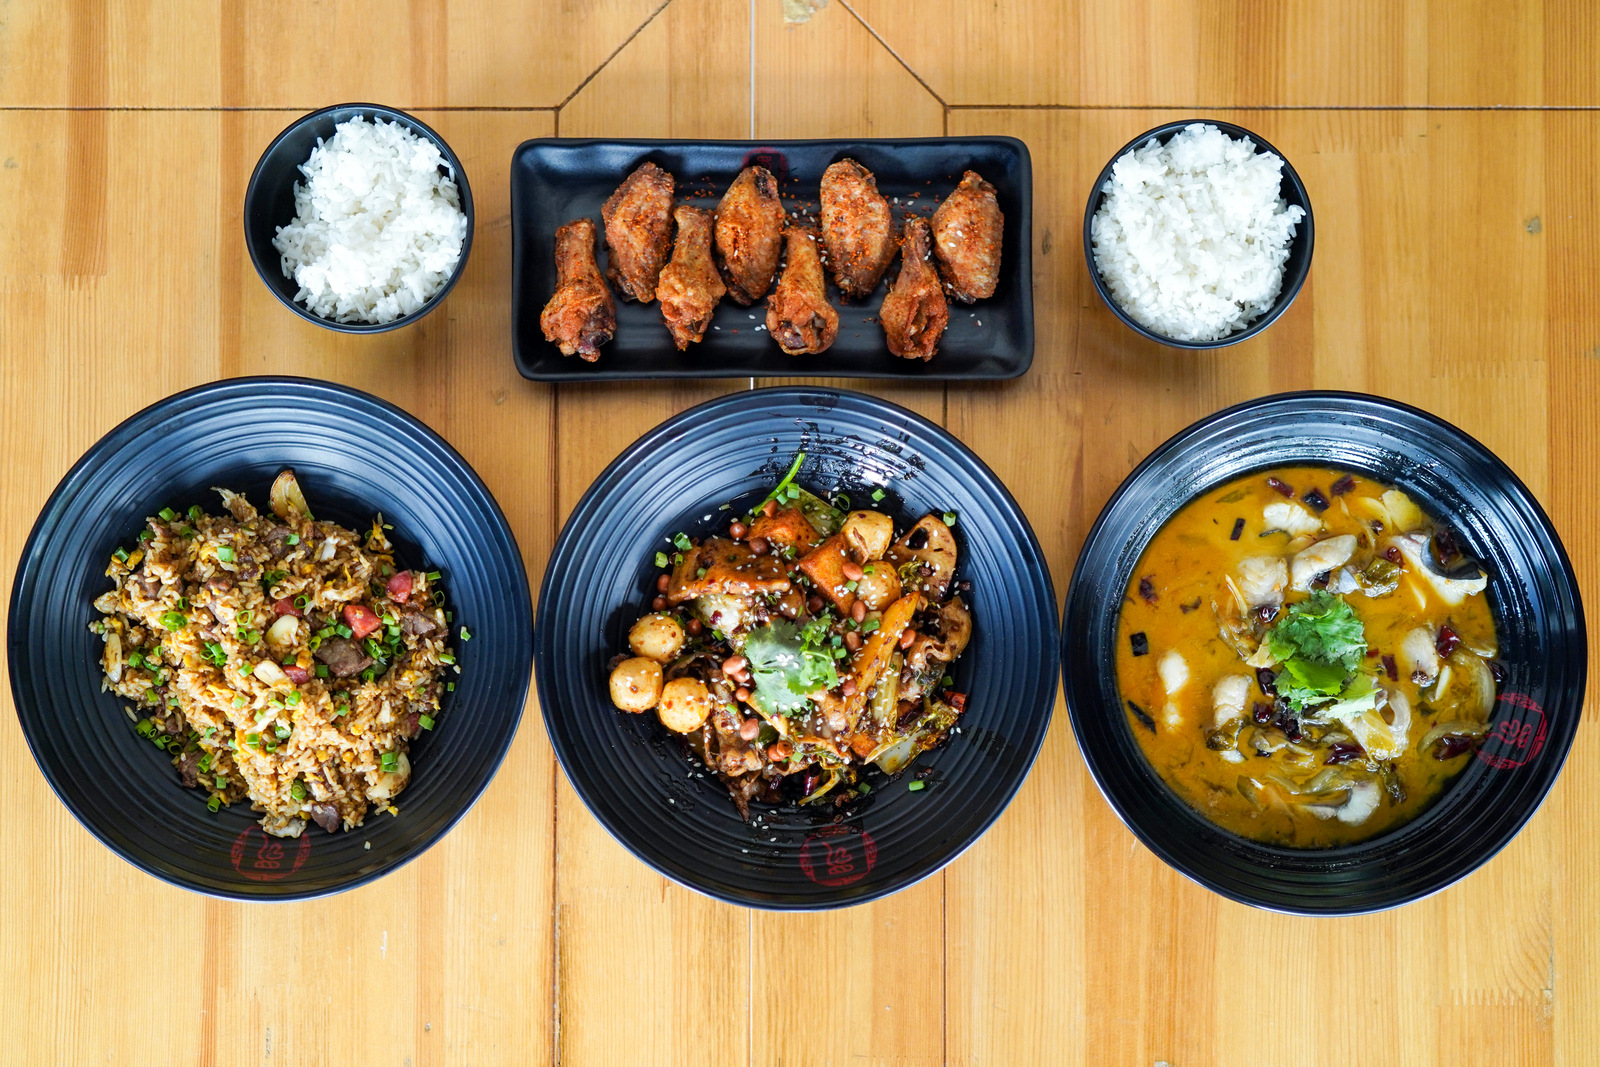 shu spicy pot, publika & aman suria: blazing-hot deliveries